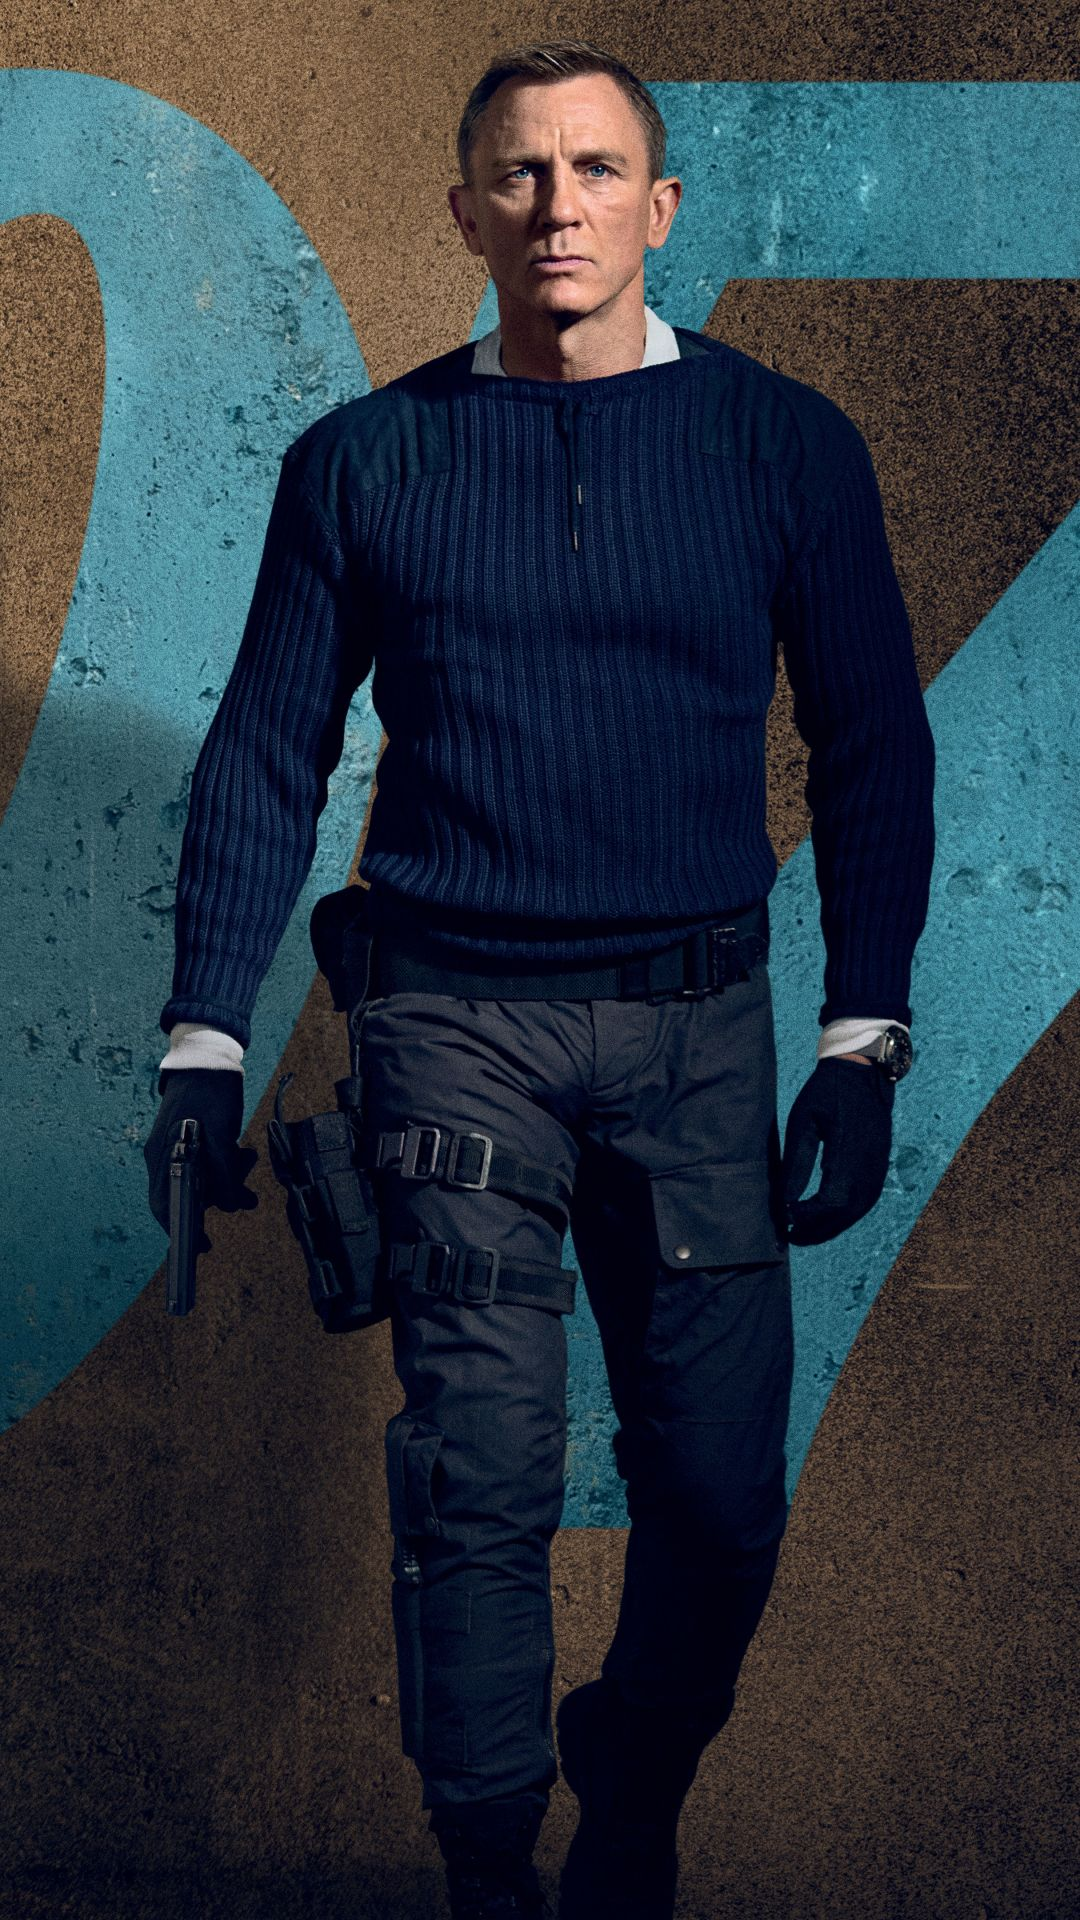 No Time To Die Daniel Craig mobile wallpaper in 2020